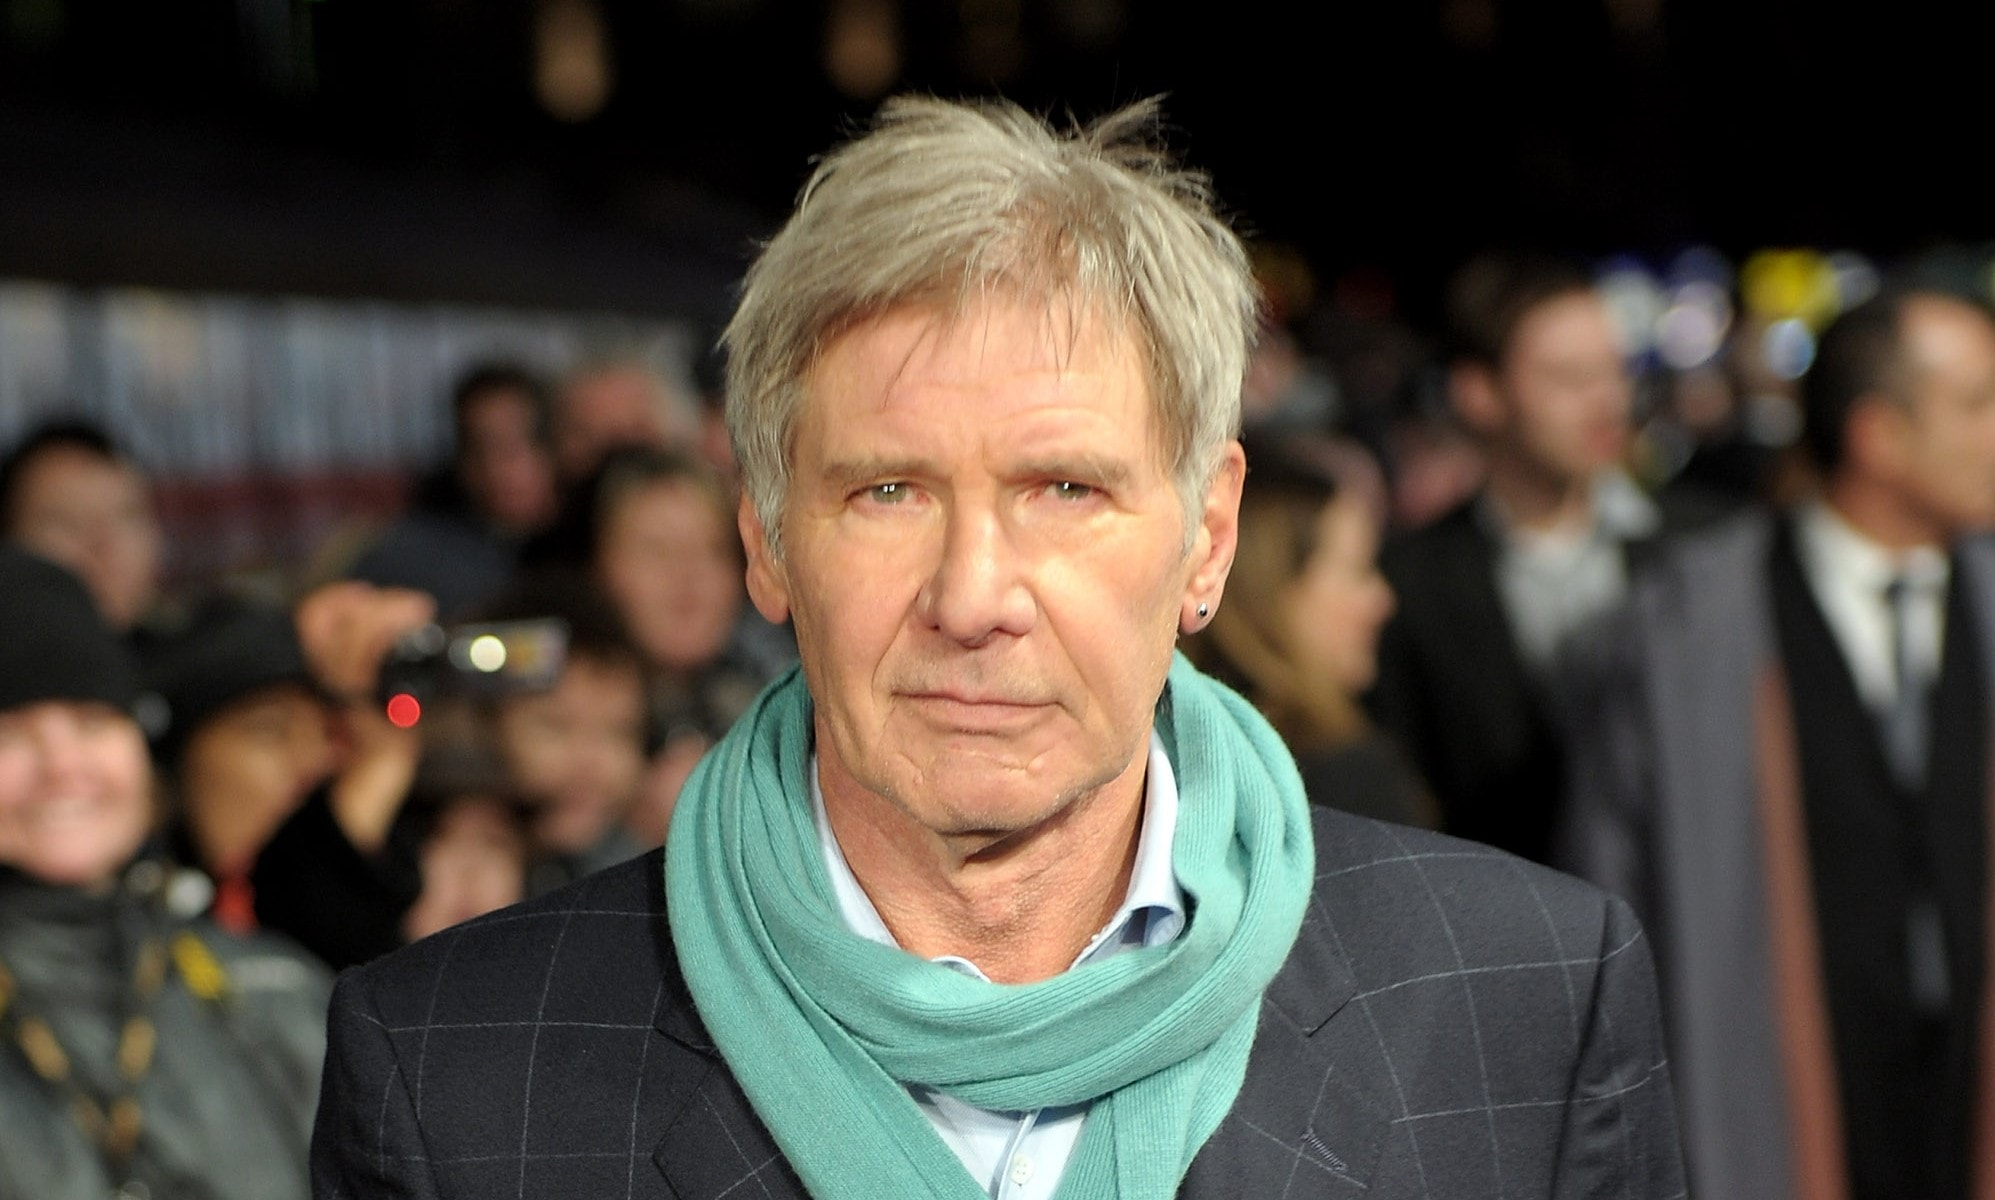 Harrison Ford Widescreen for desktop